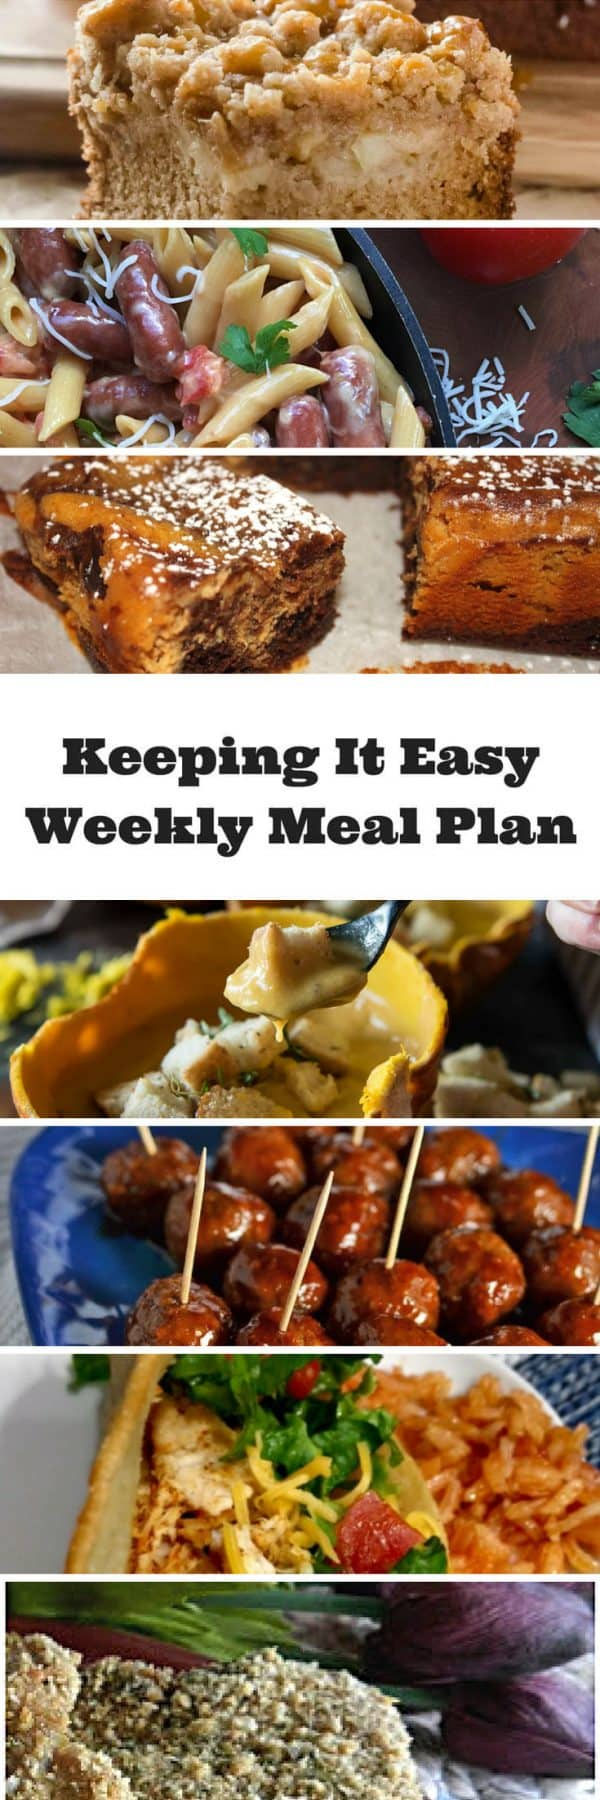 #KeepItEasy Meal Plan Ideas for the Week